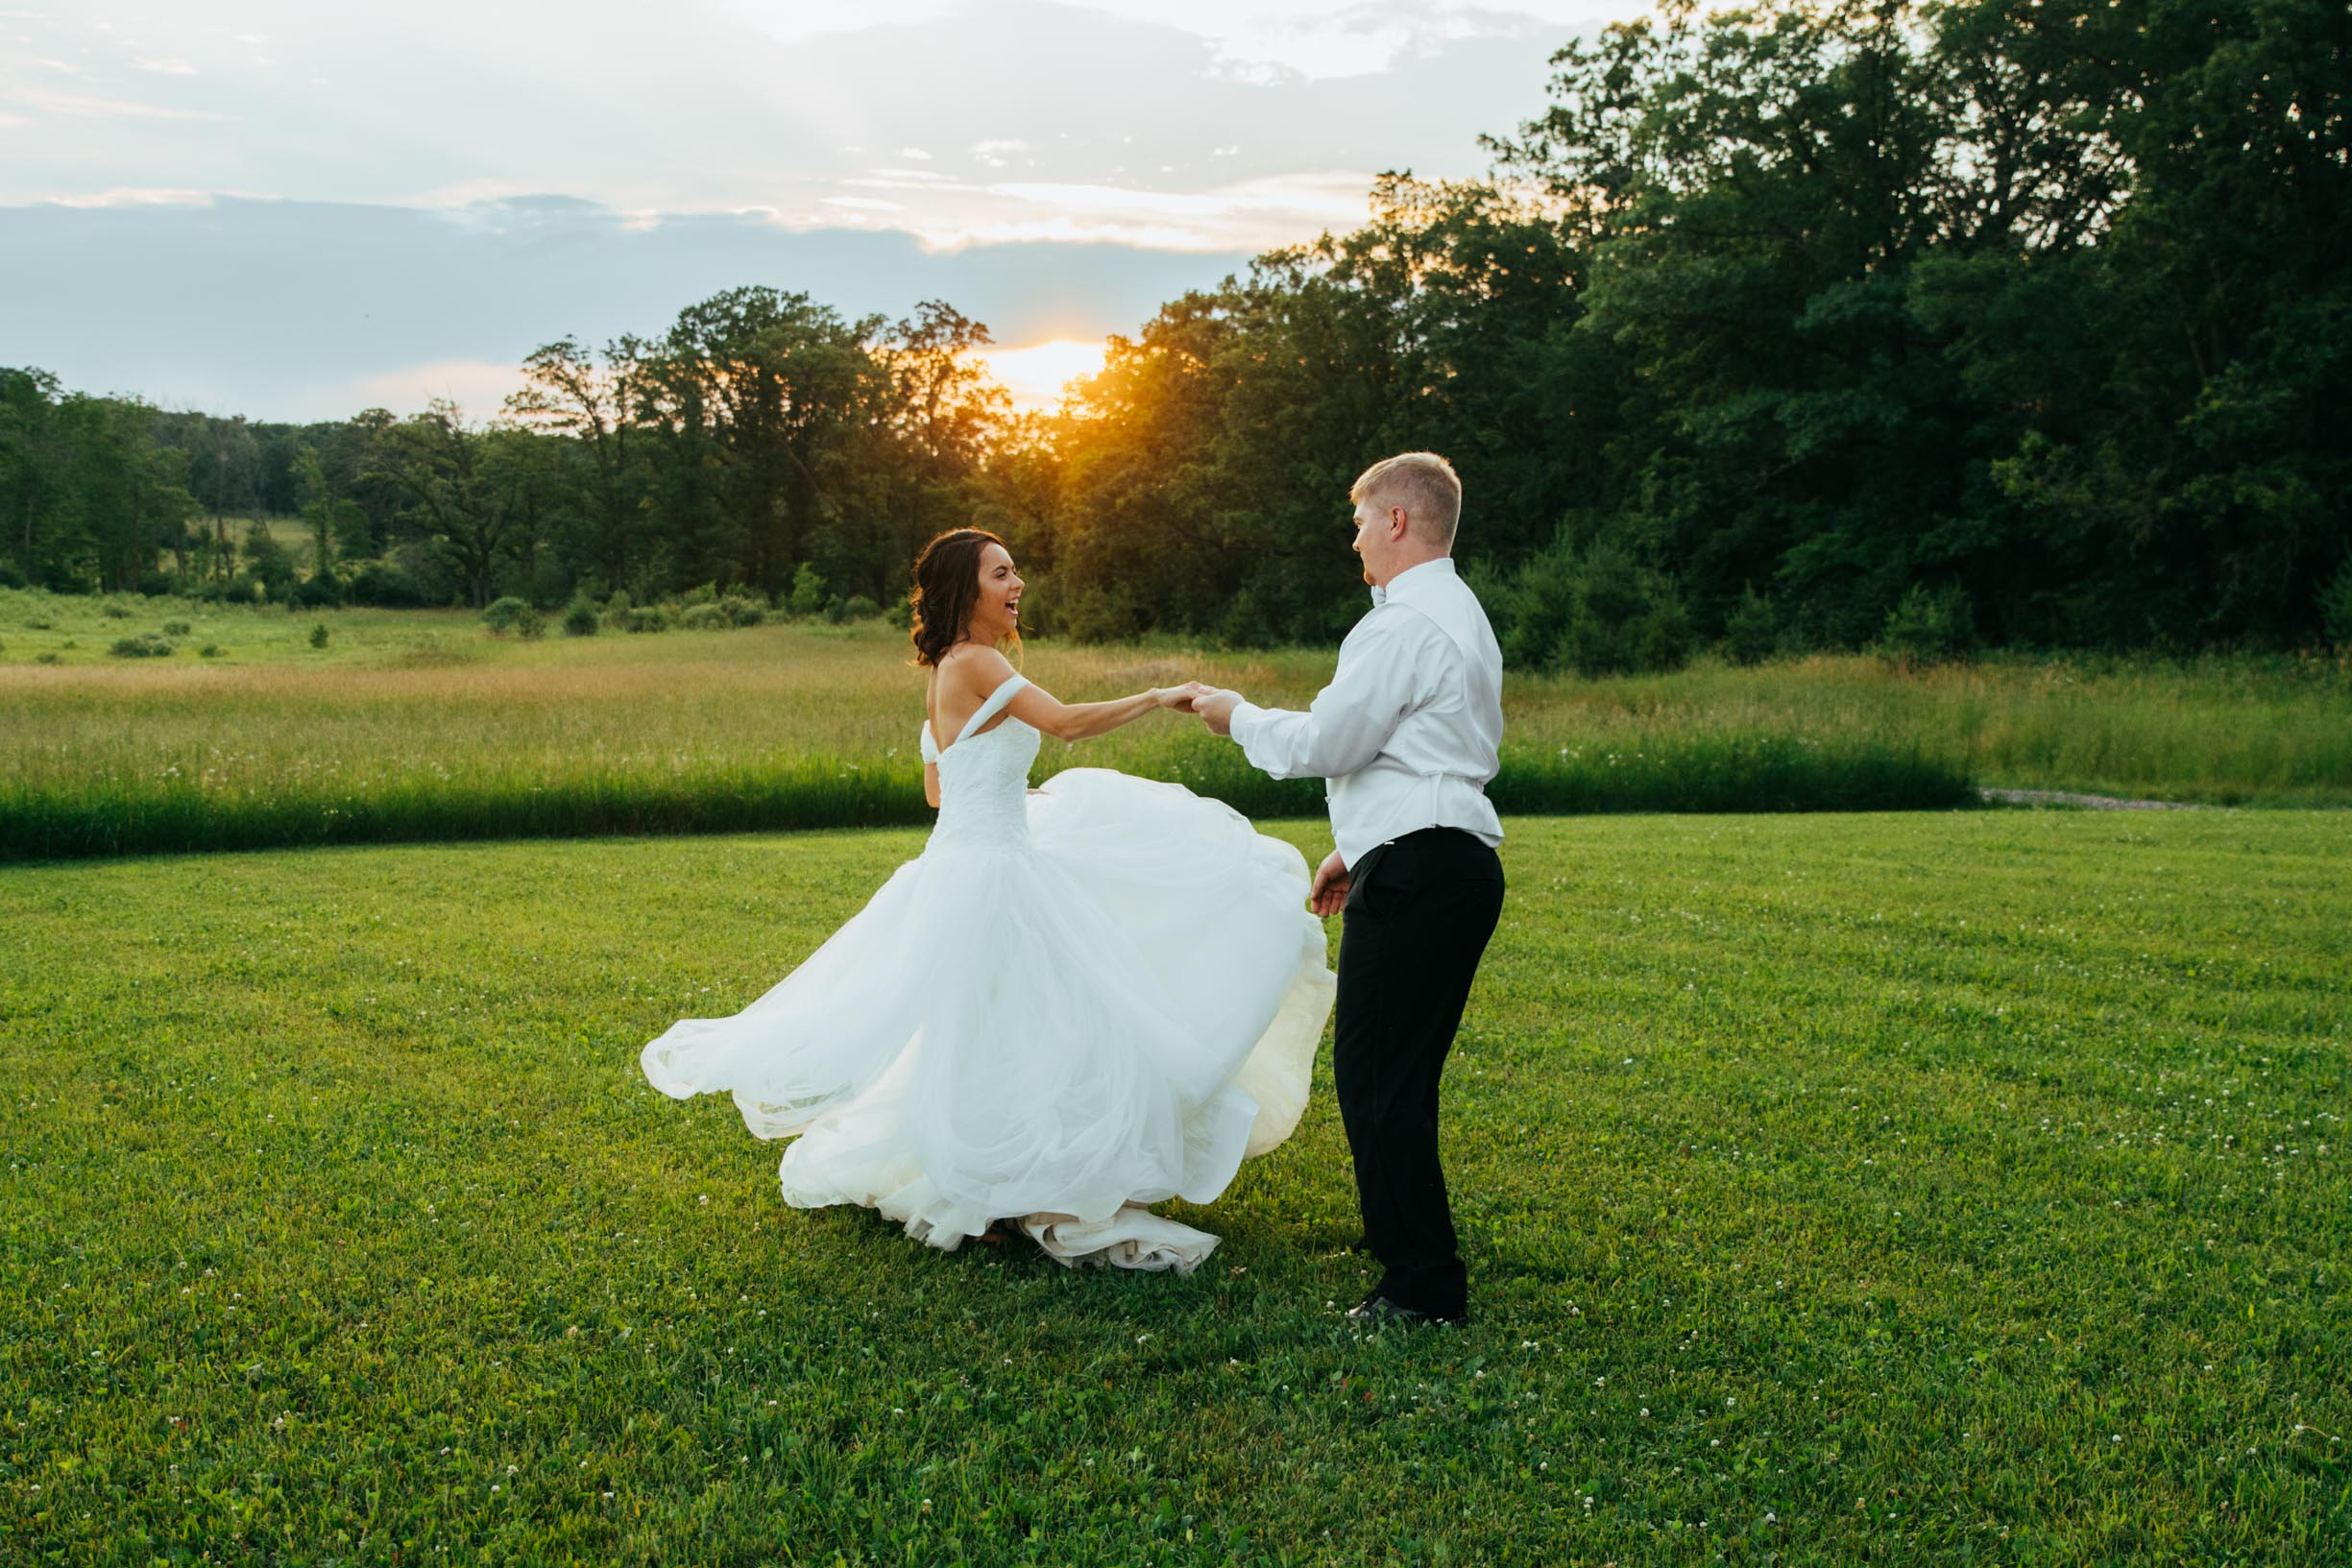 Minnesota_Bride_Groom_Portrait_Sunset_Portraits_Vineyard2.jpg